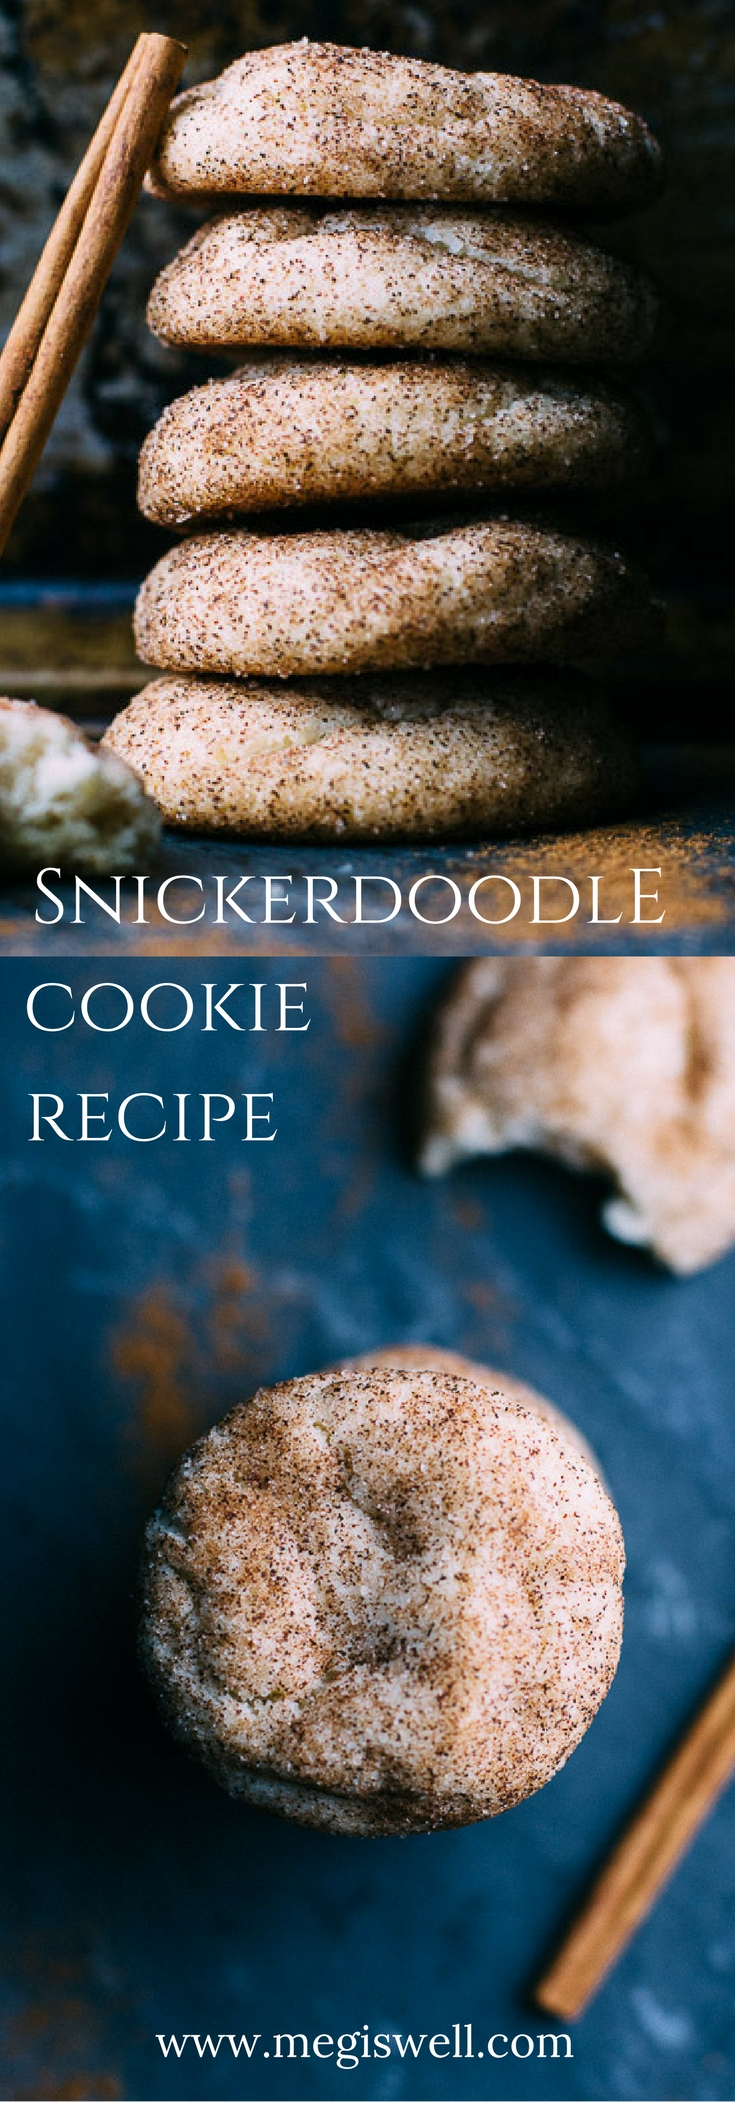 This Snickerdoodle Cookie recipe is classic, simple, and easy. Sometimes you just can't beat cinnamon and sugar.   www.megiswell.com